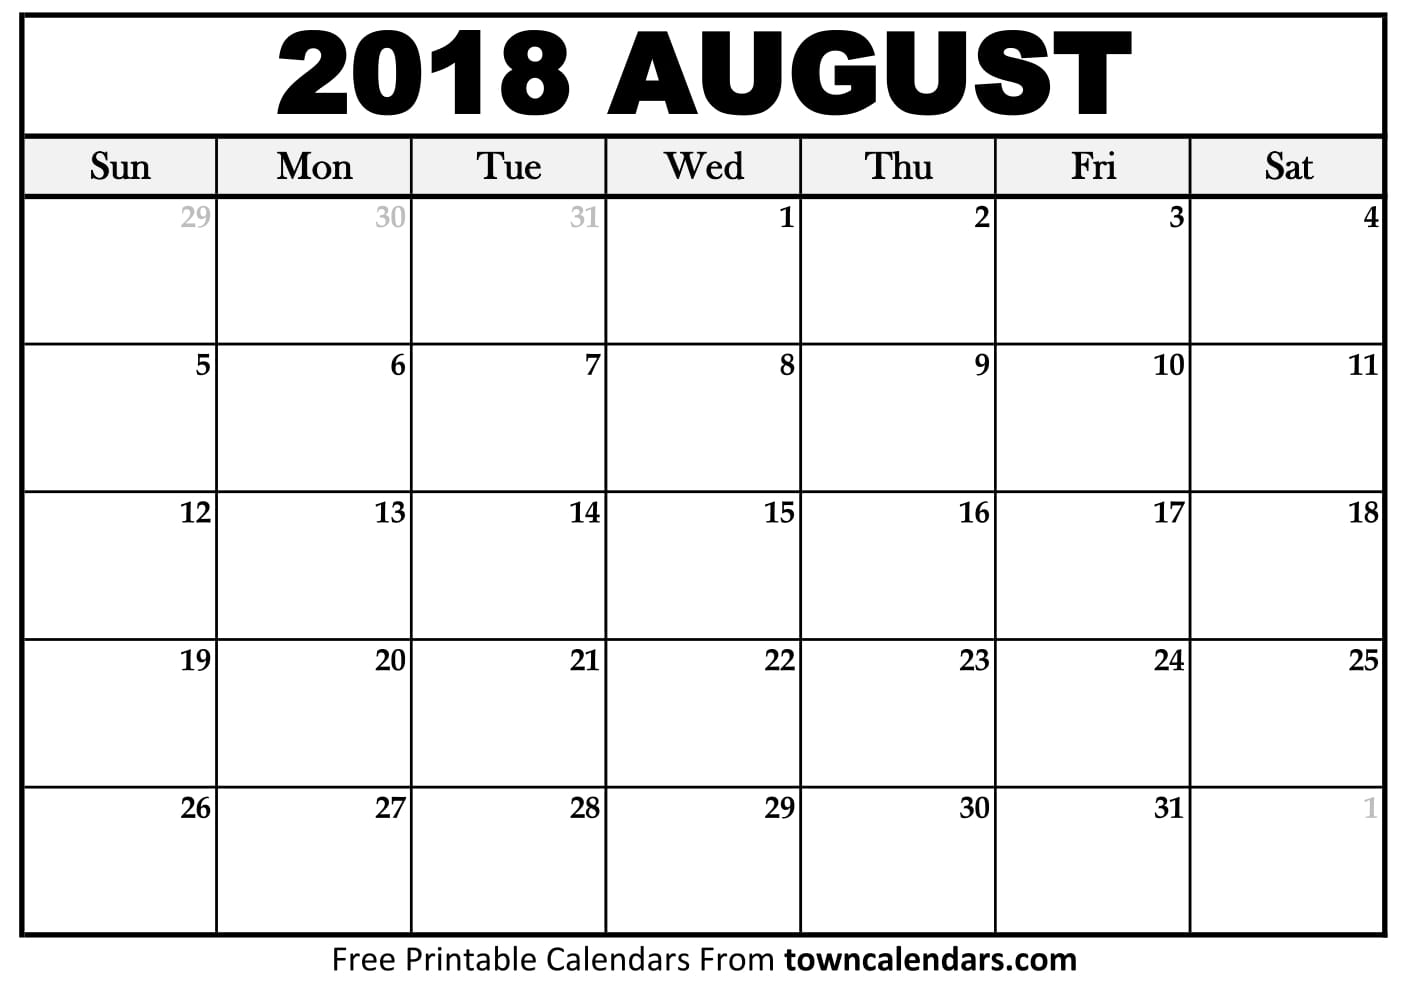 calender august 2018